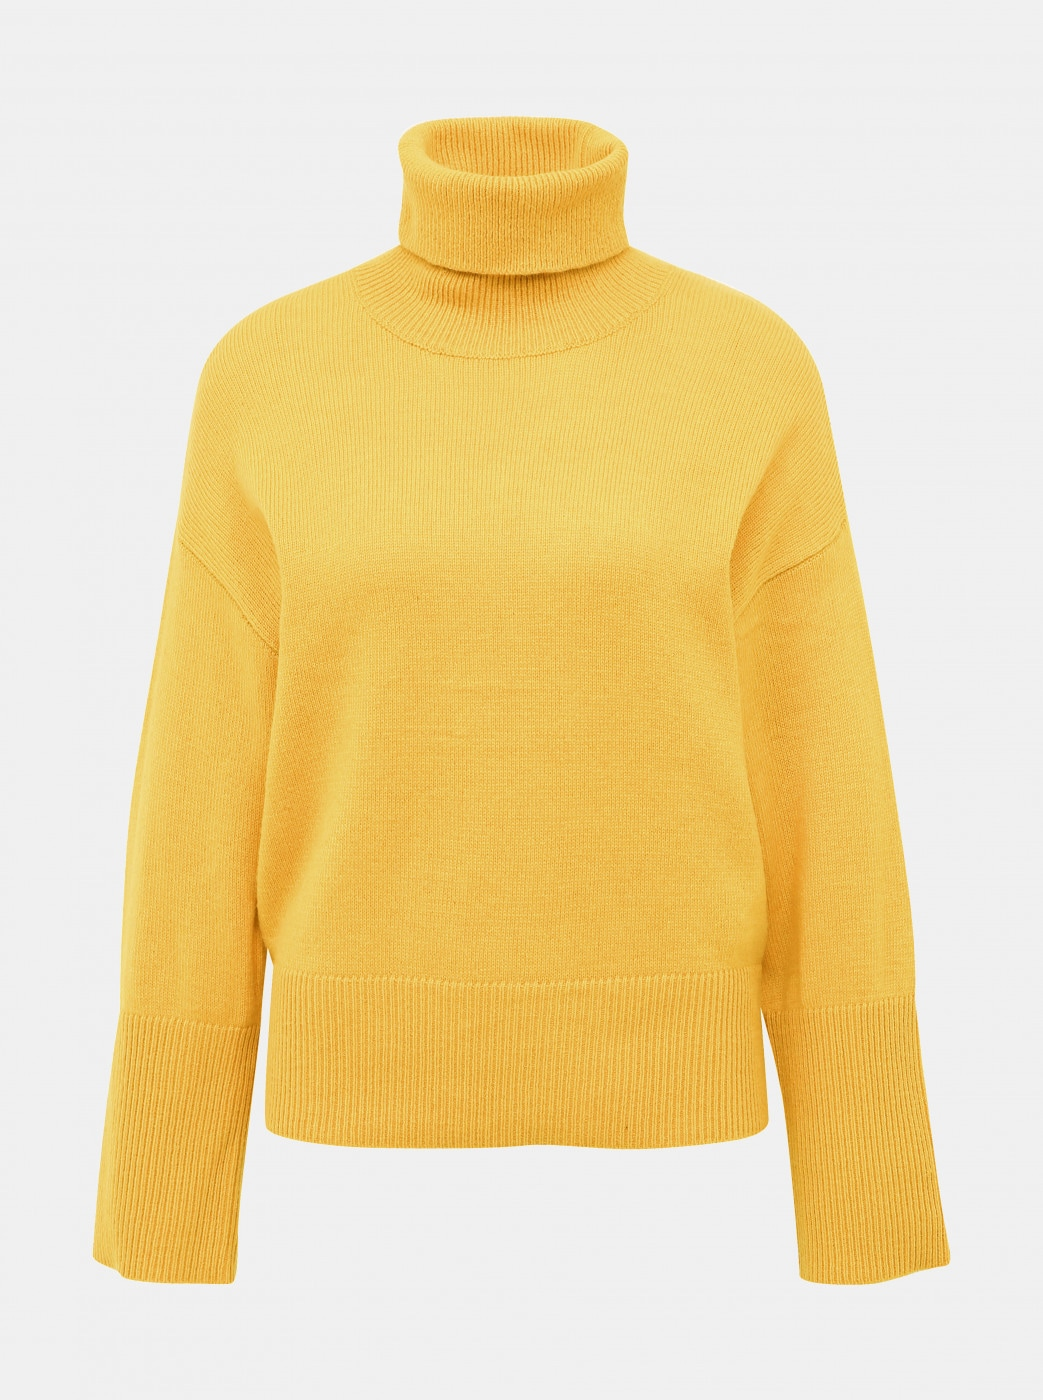 Mustard turtleneck with admixture of wool Selected Femme Rianna